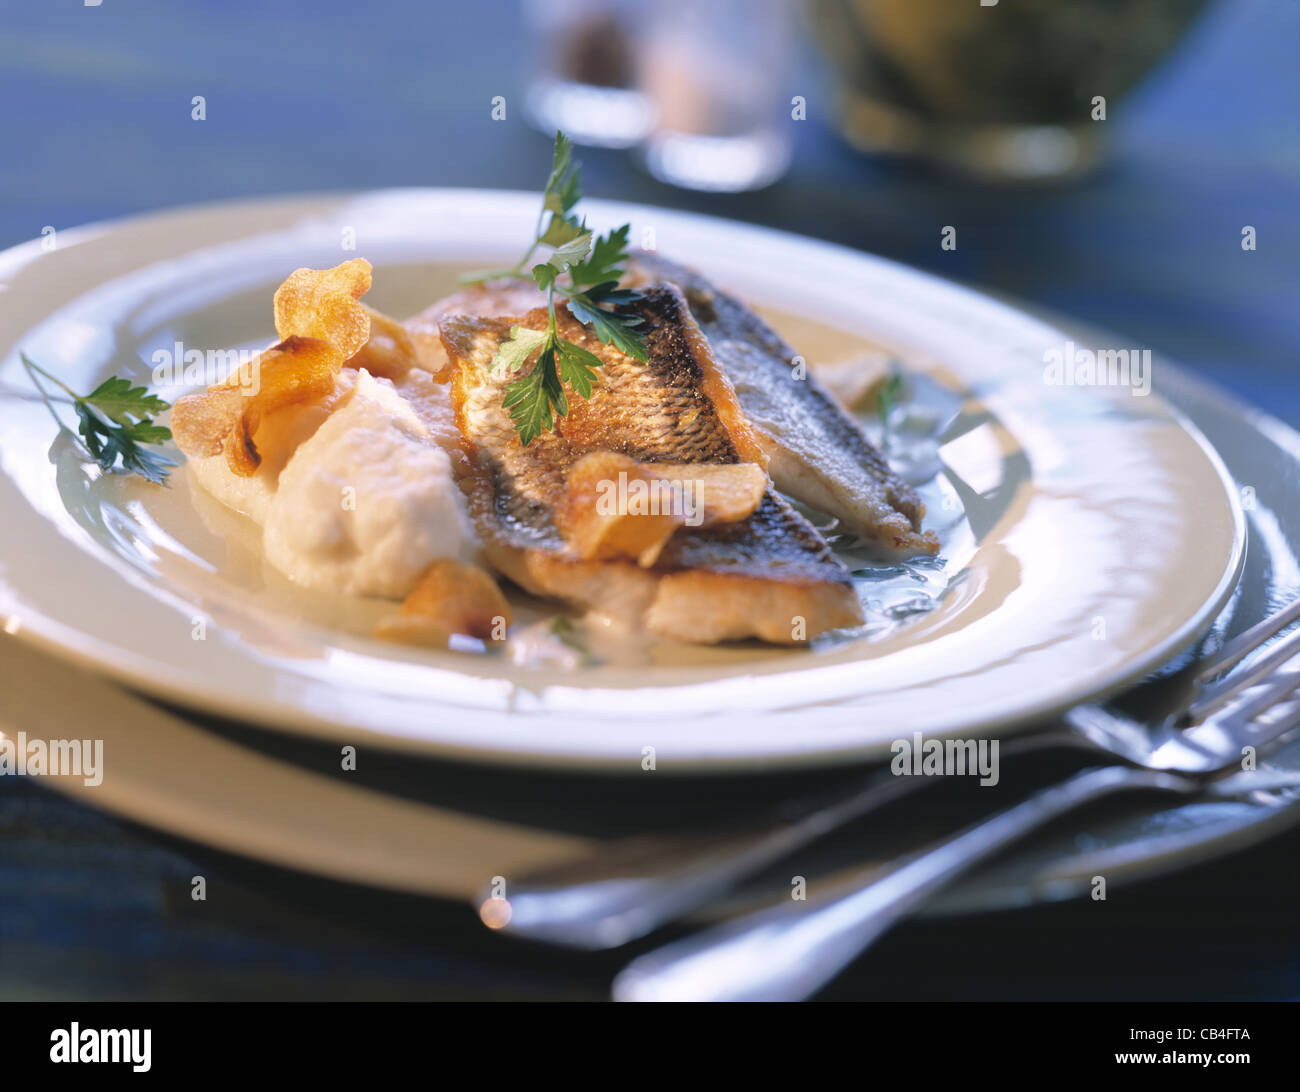 fillet of white fish with puree and chips of jerusalem artichoke stock photo 41282202 alamy. Black Bedroom Furniture Sets. Home Design Ideas